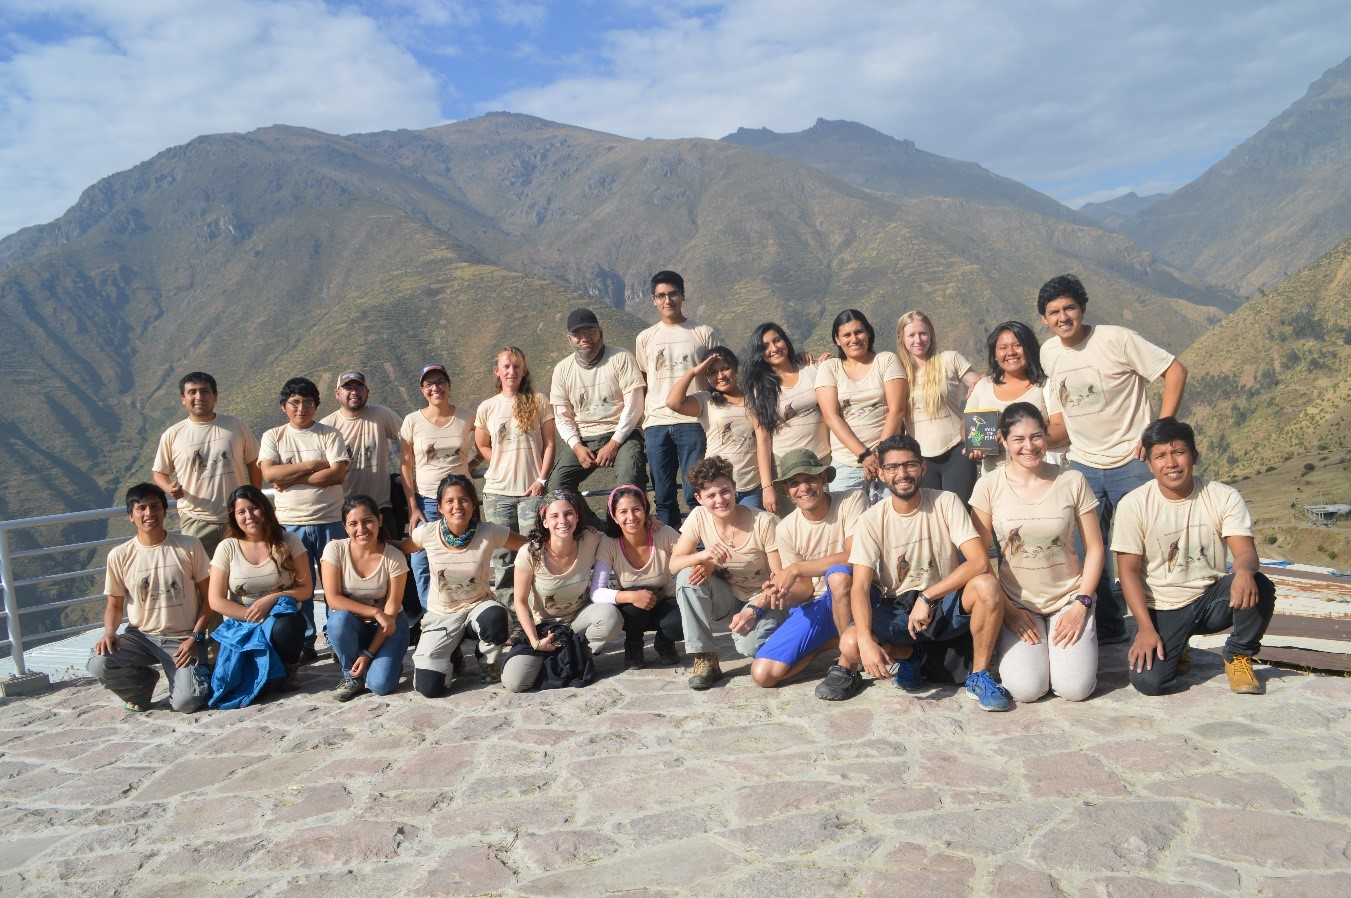 The Santa Eulalia Banding Station near Lima won a grant to host the first NABC certification event in Peru and South America.